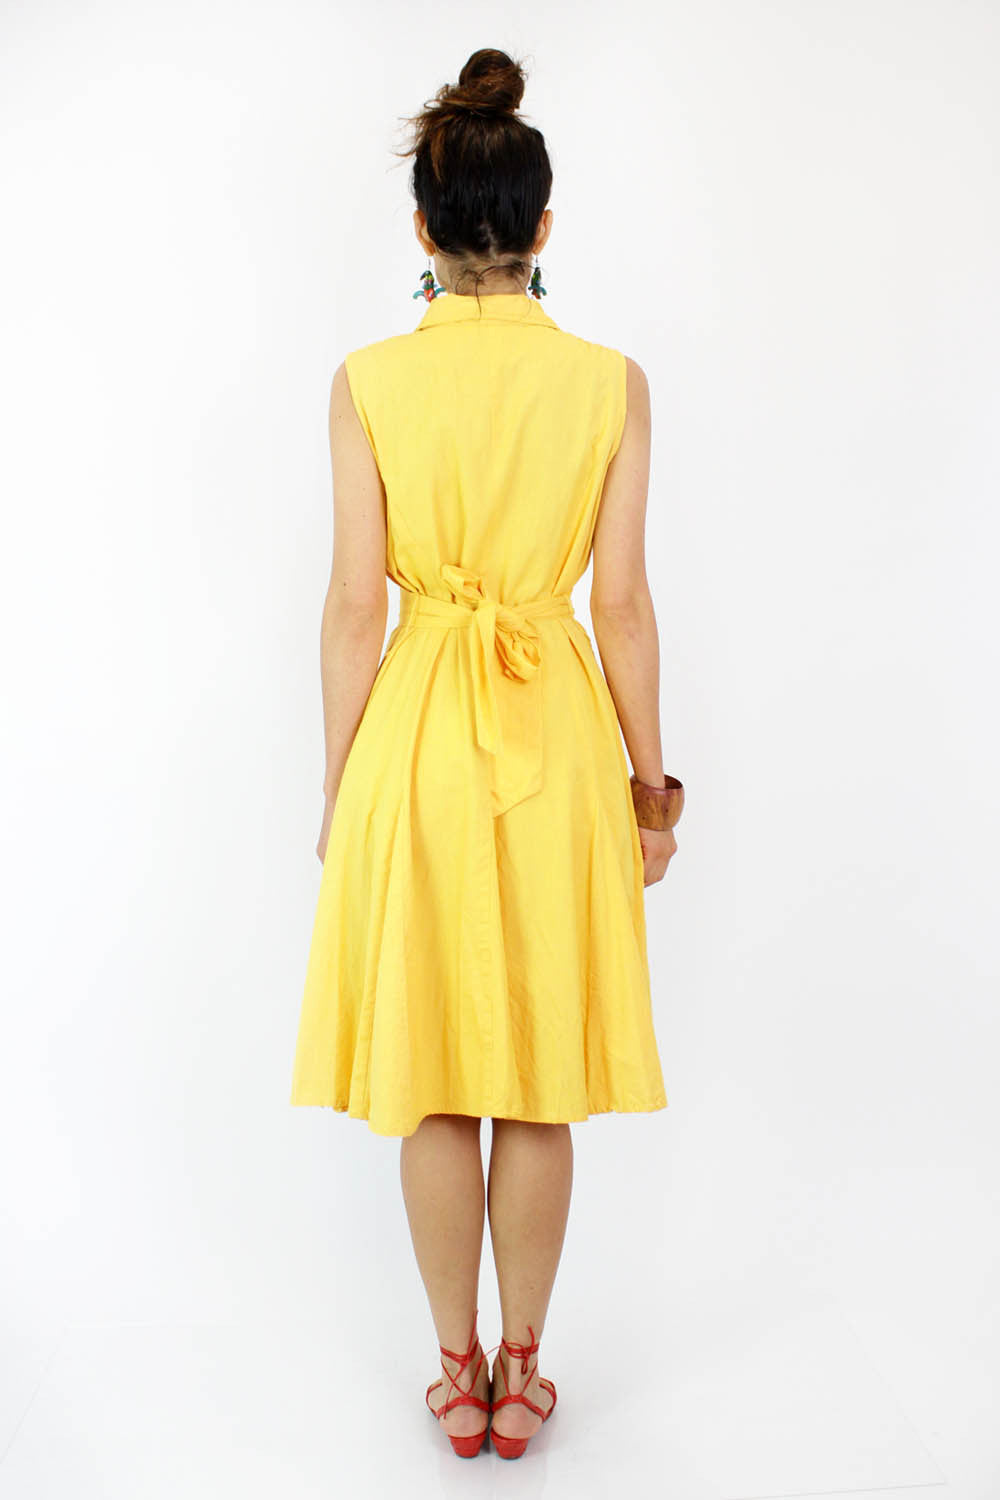 Banana Yellow Shirtdress M/L